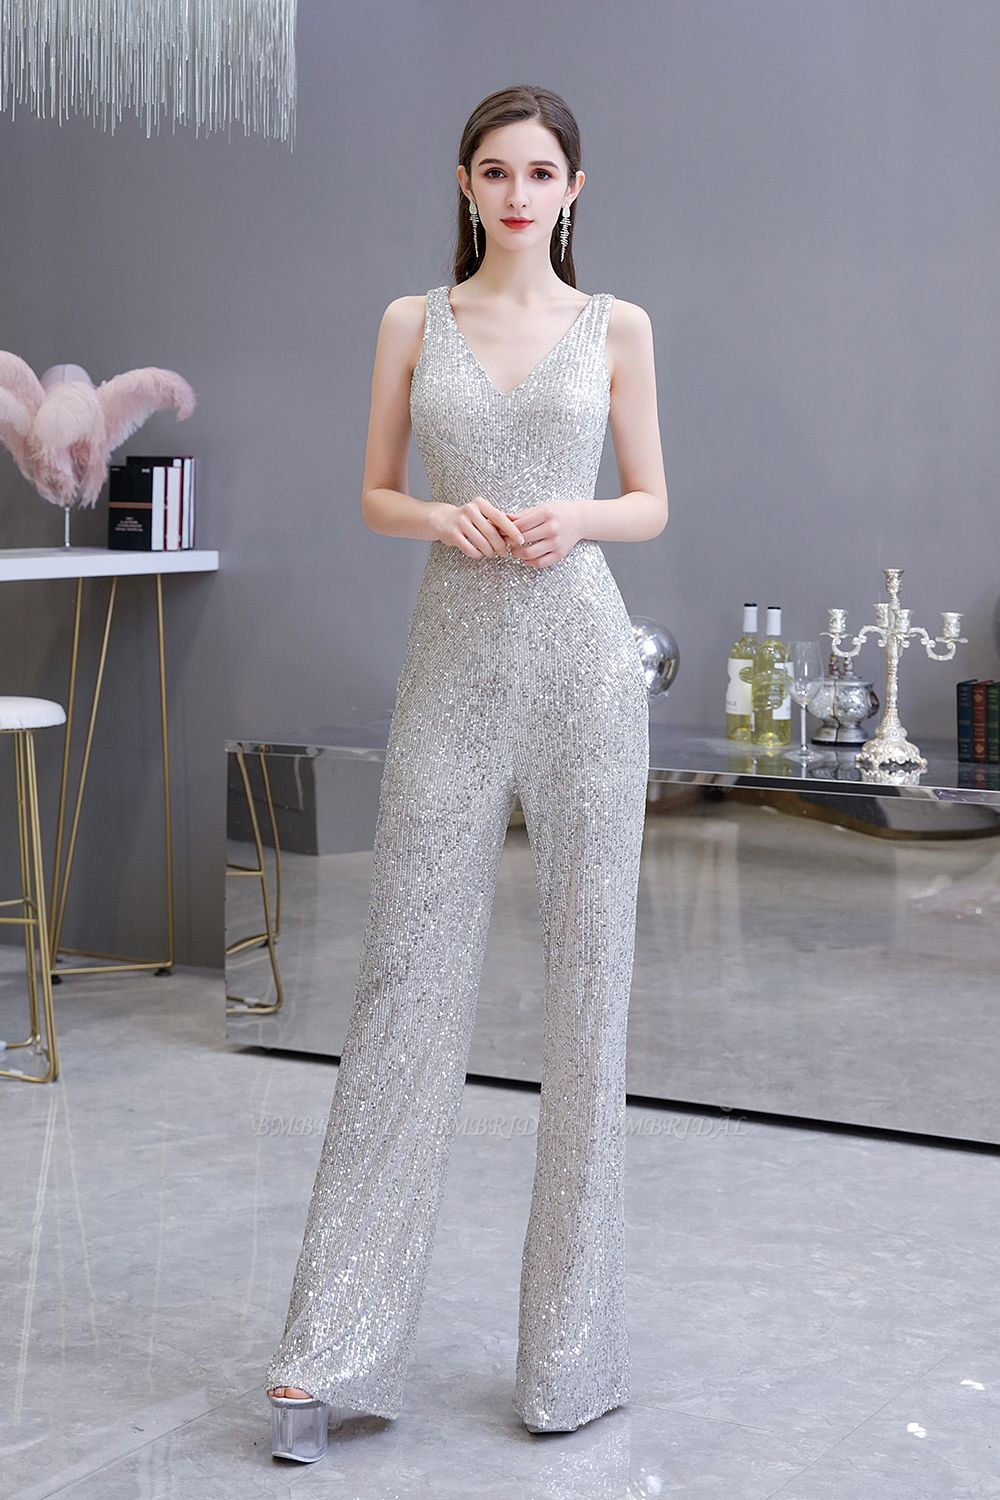 Stunning Sequins V-Neck Sleeveless Jumpsuit Event Party Gowns On Sale